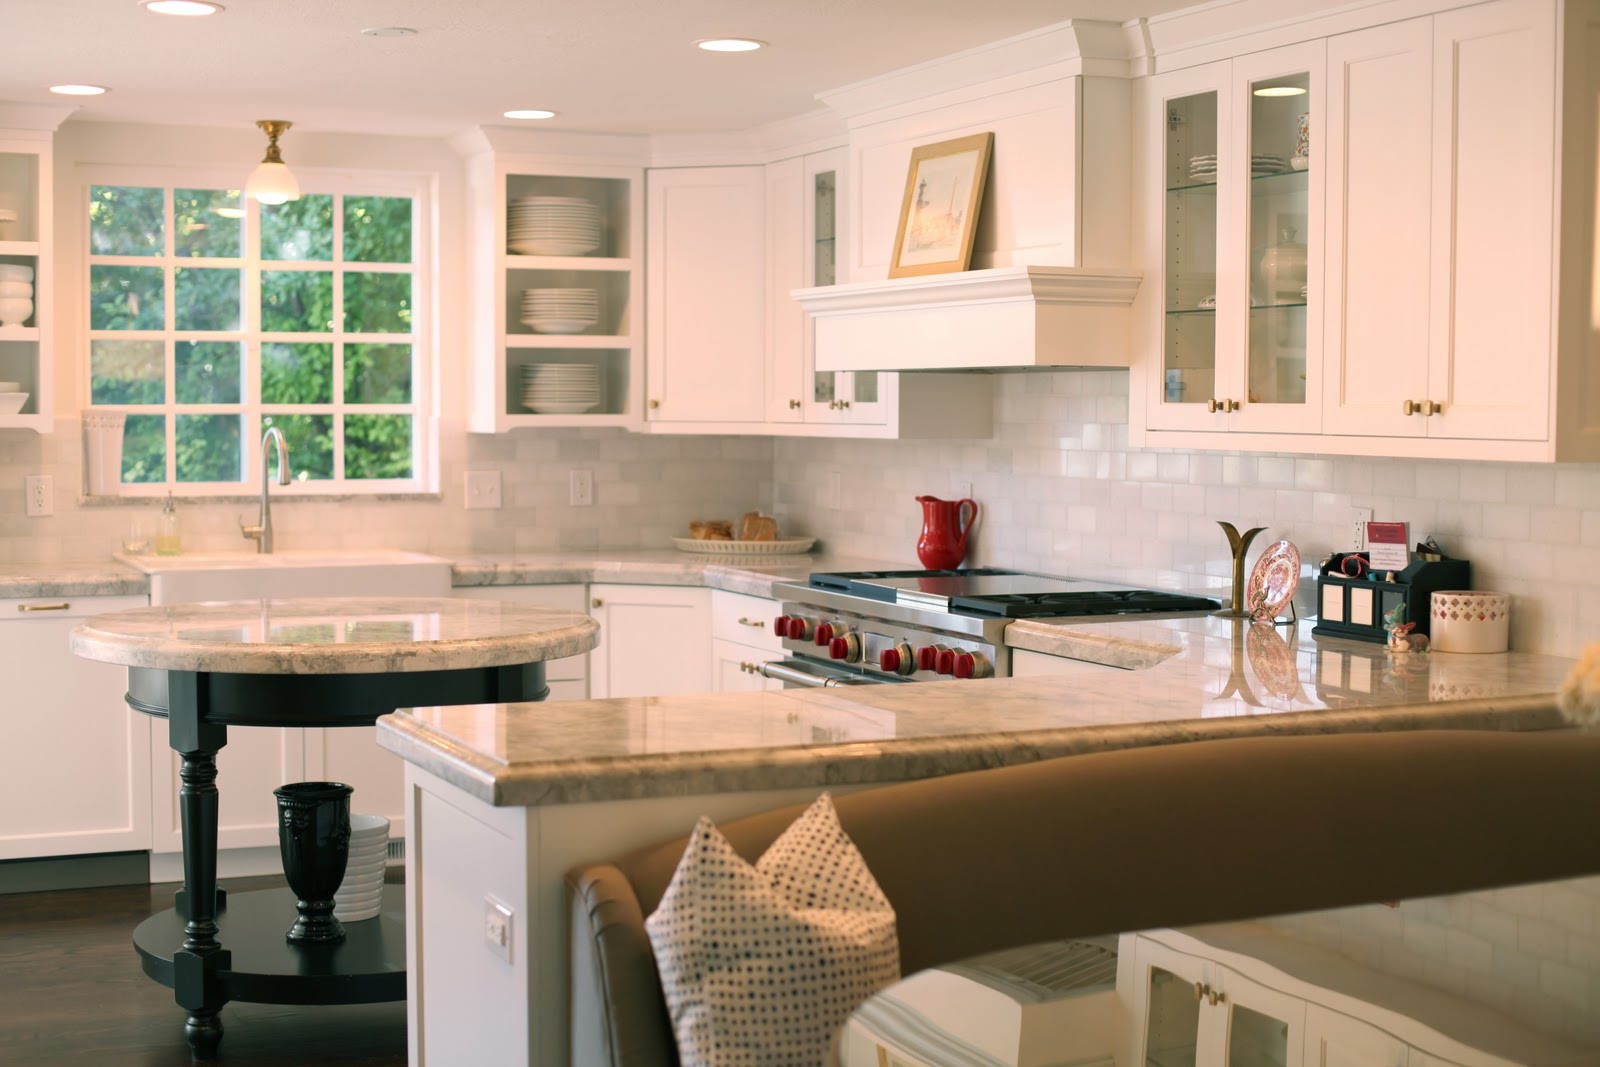 White gold family room kitchen bath pics of our home - Kitchen island with bench seating ...